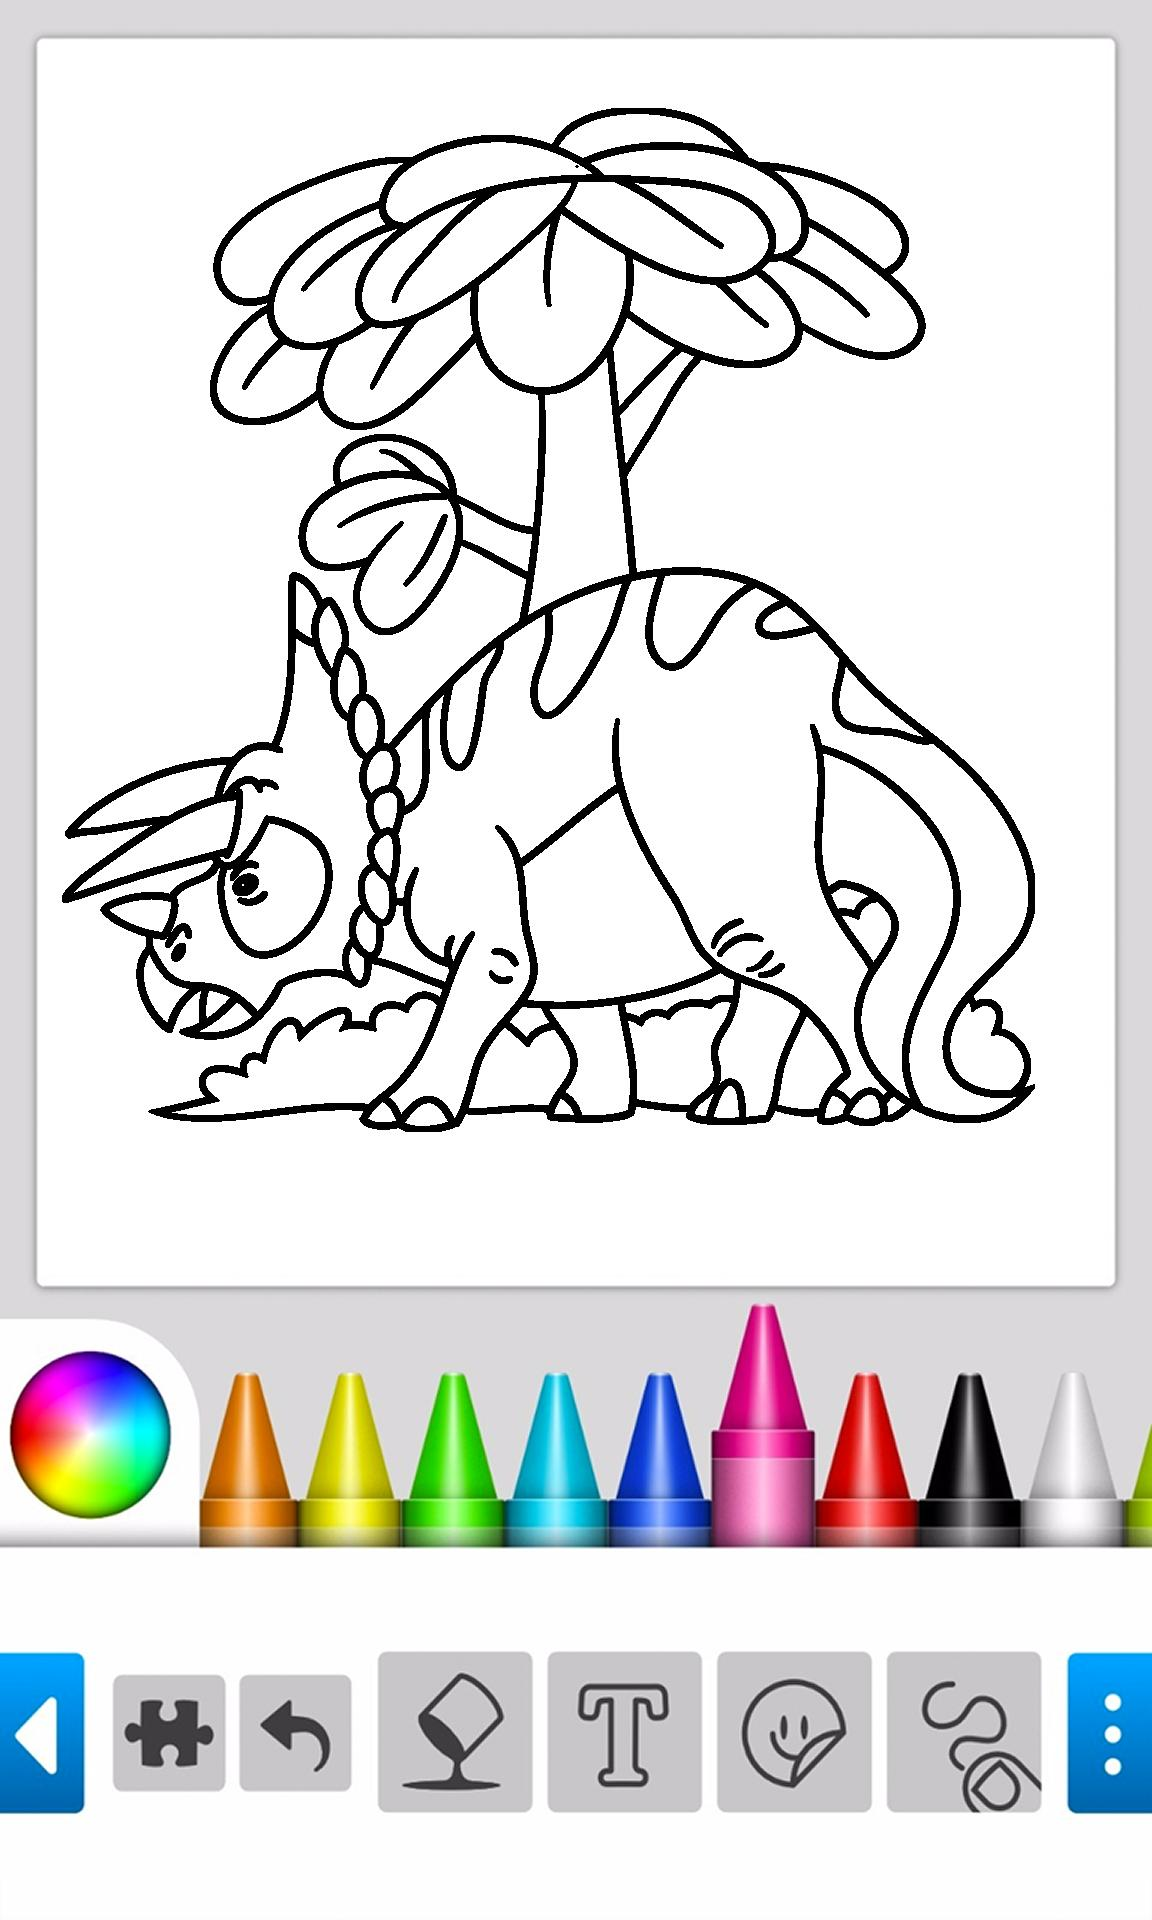 Permainan Warna Dinosaurus For Android APK Download